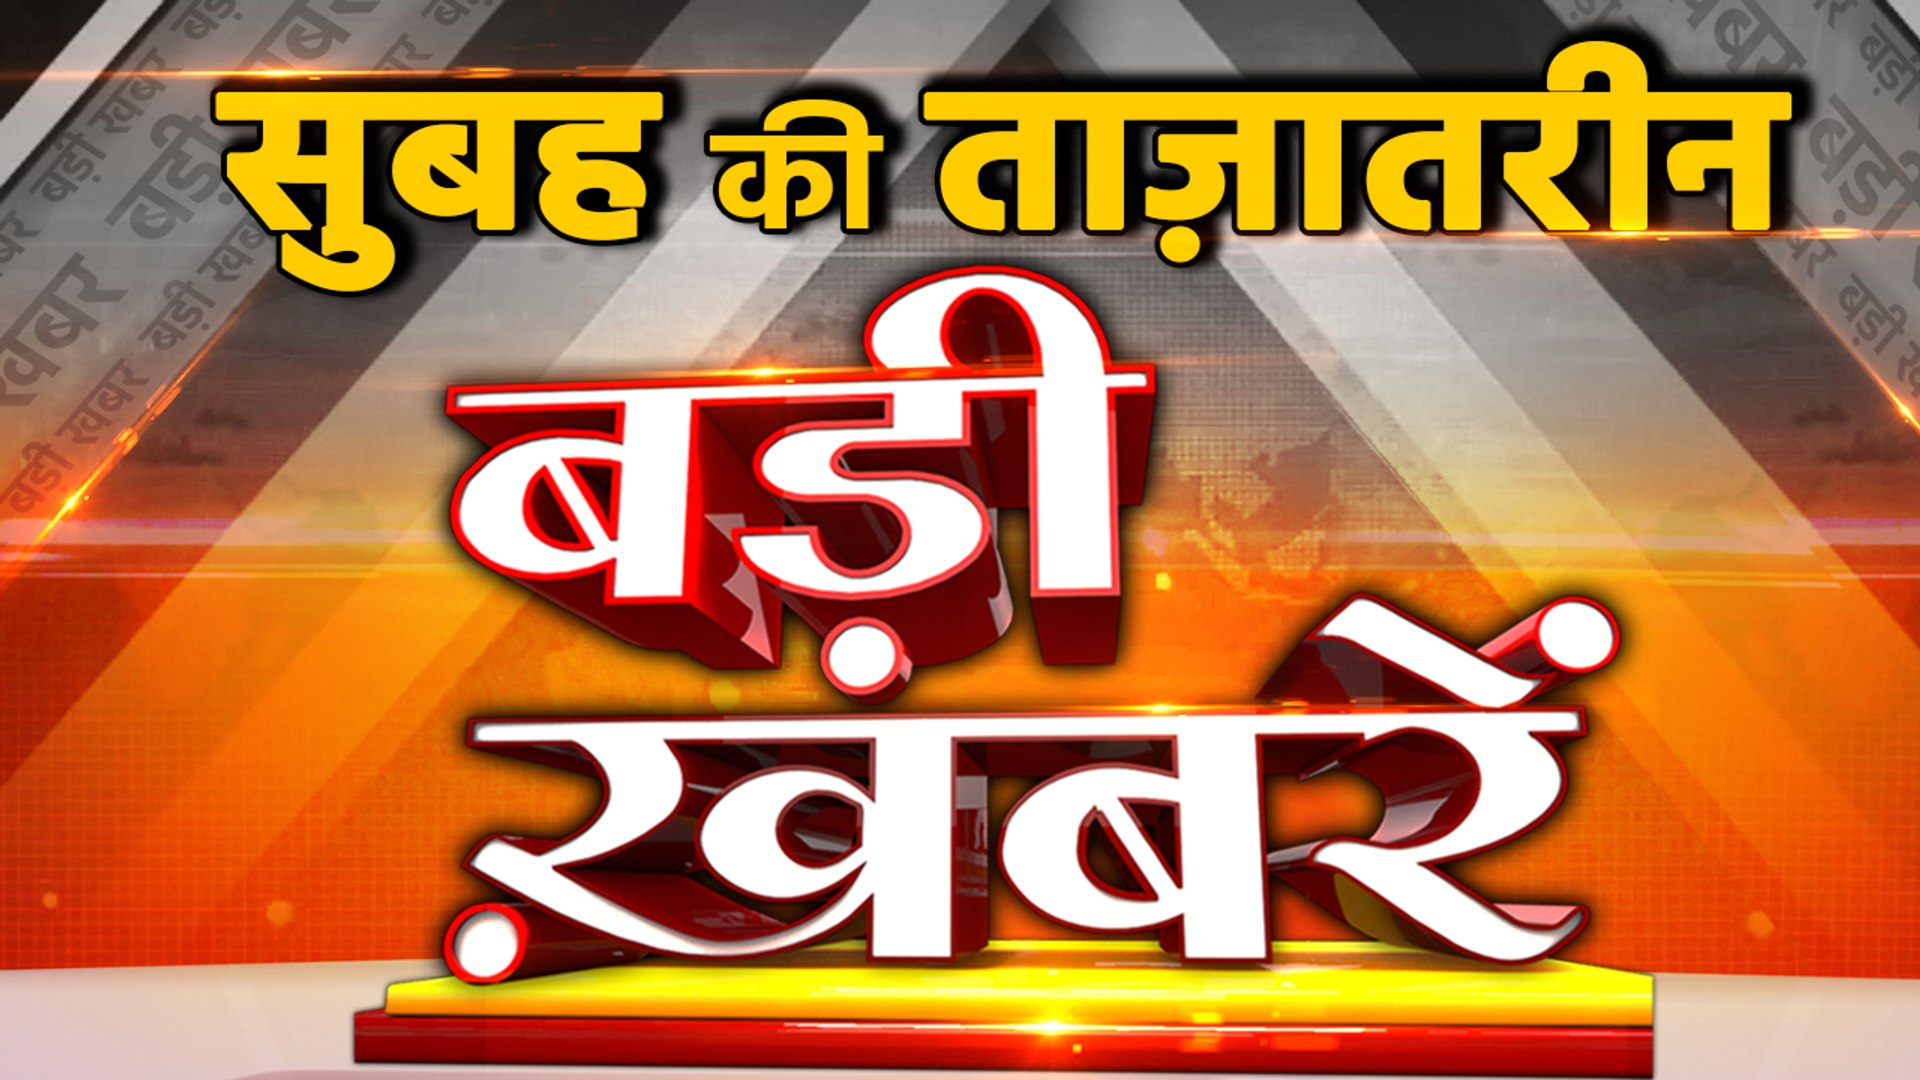 Top News | Latest News | Top Headlines | 15 December  News | India Top News | वनइंडिया हिंदी